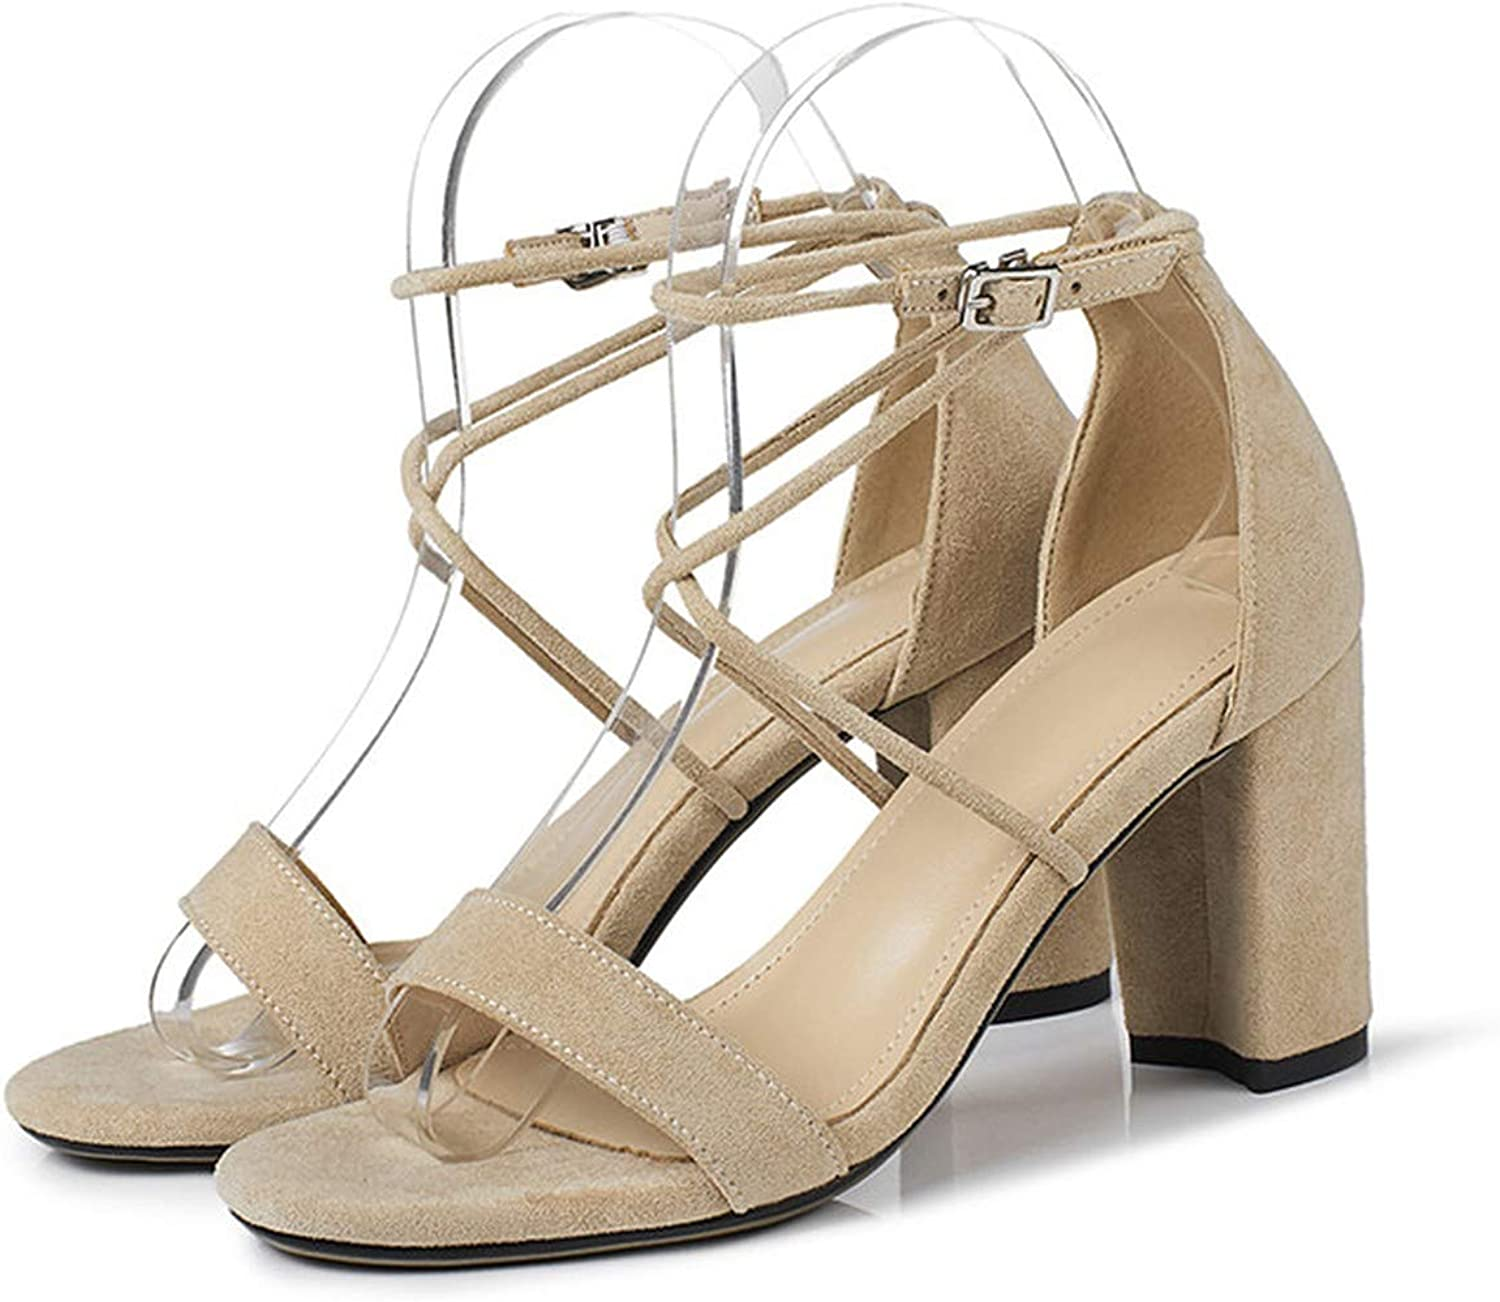 Summer Sandals Women shoes Cross-Tied Block High Heels shoes Sexy Buckle Open Toe Party Sandals,Apricot,4